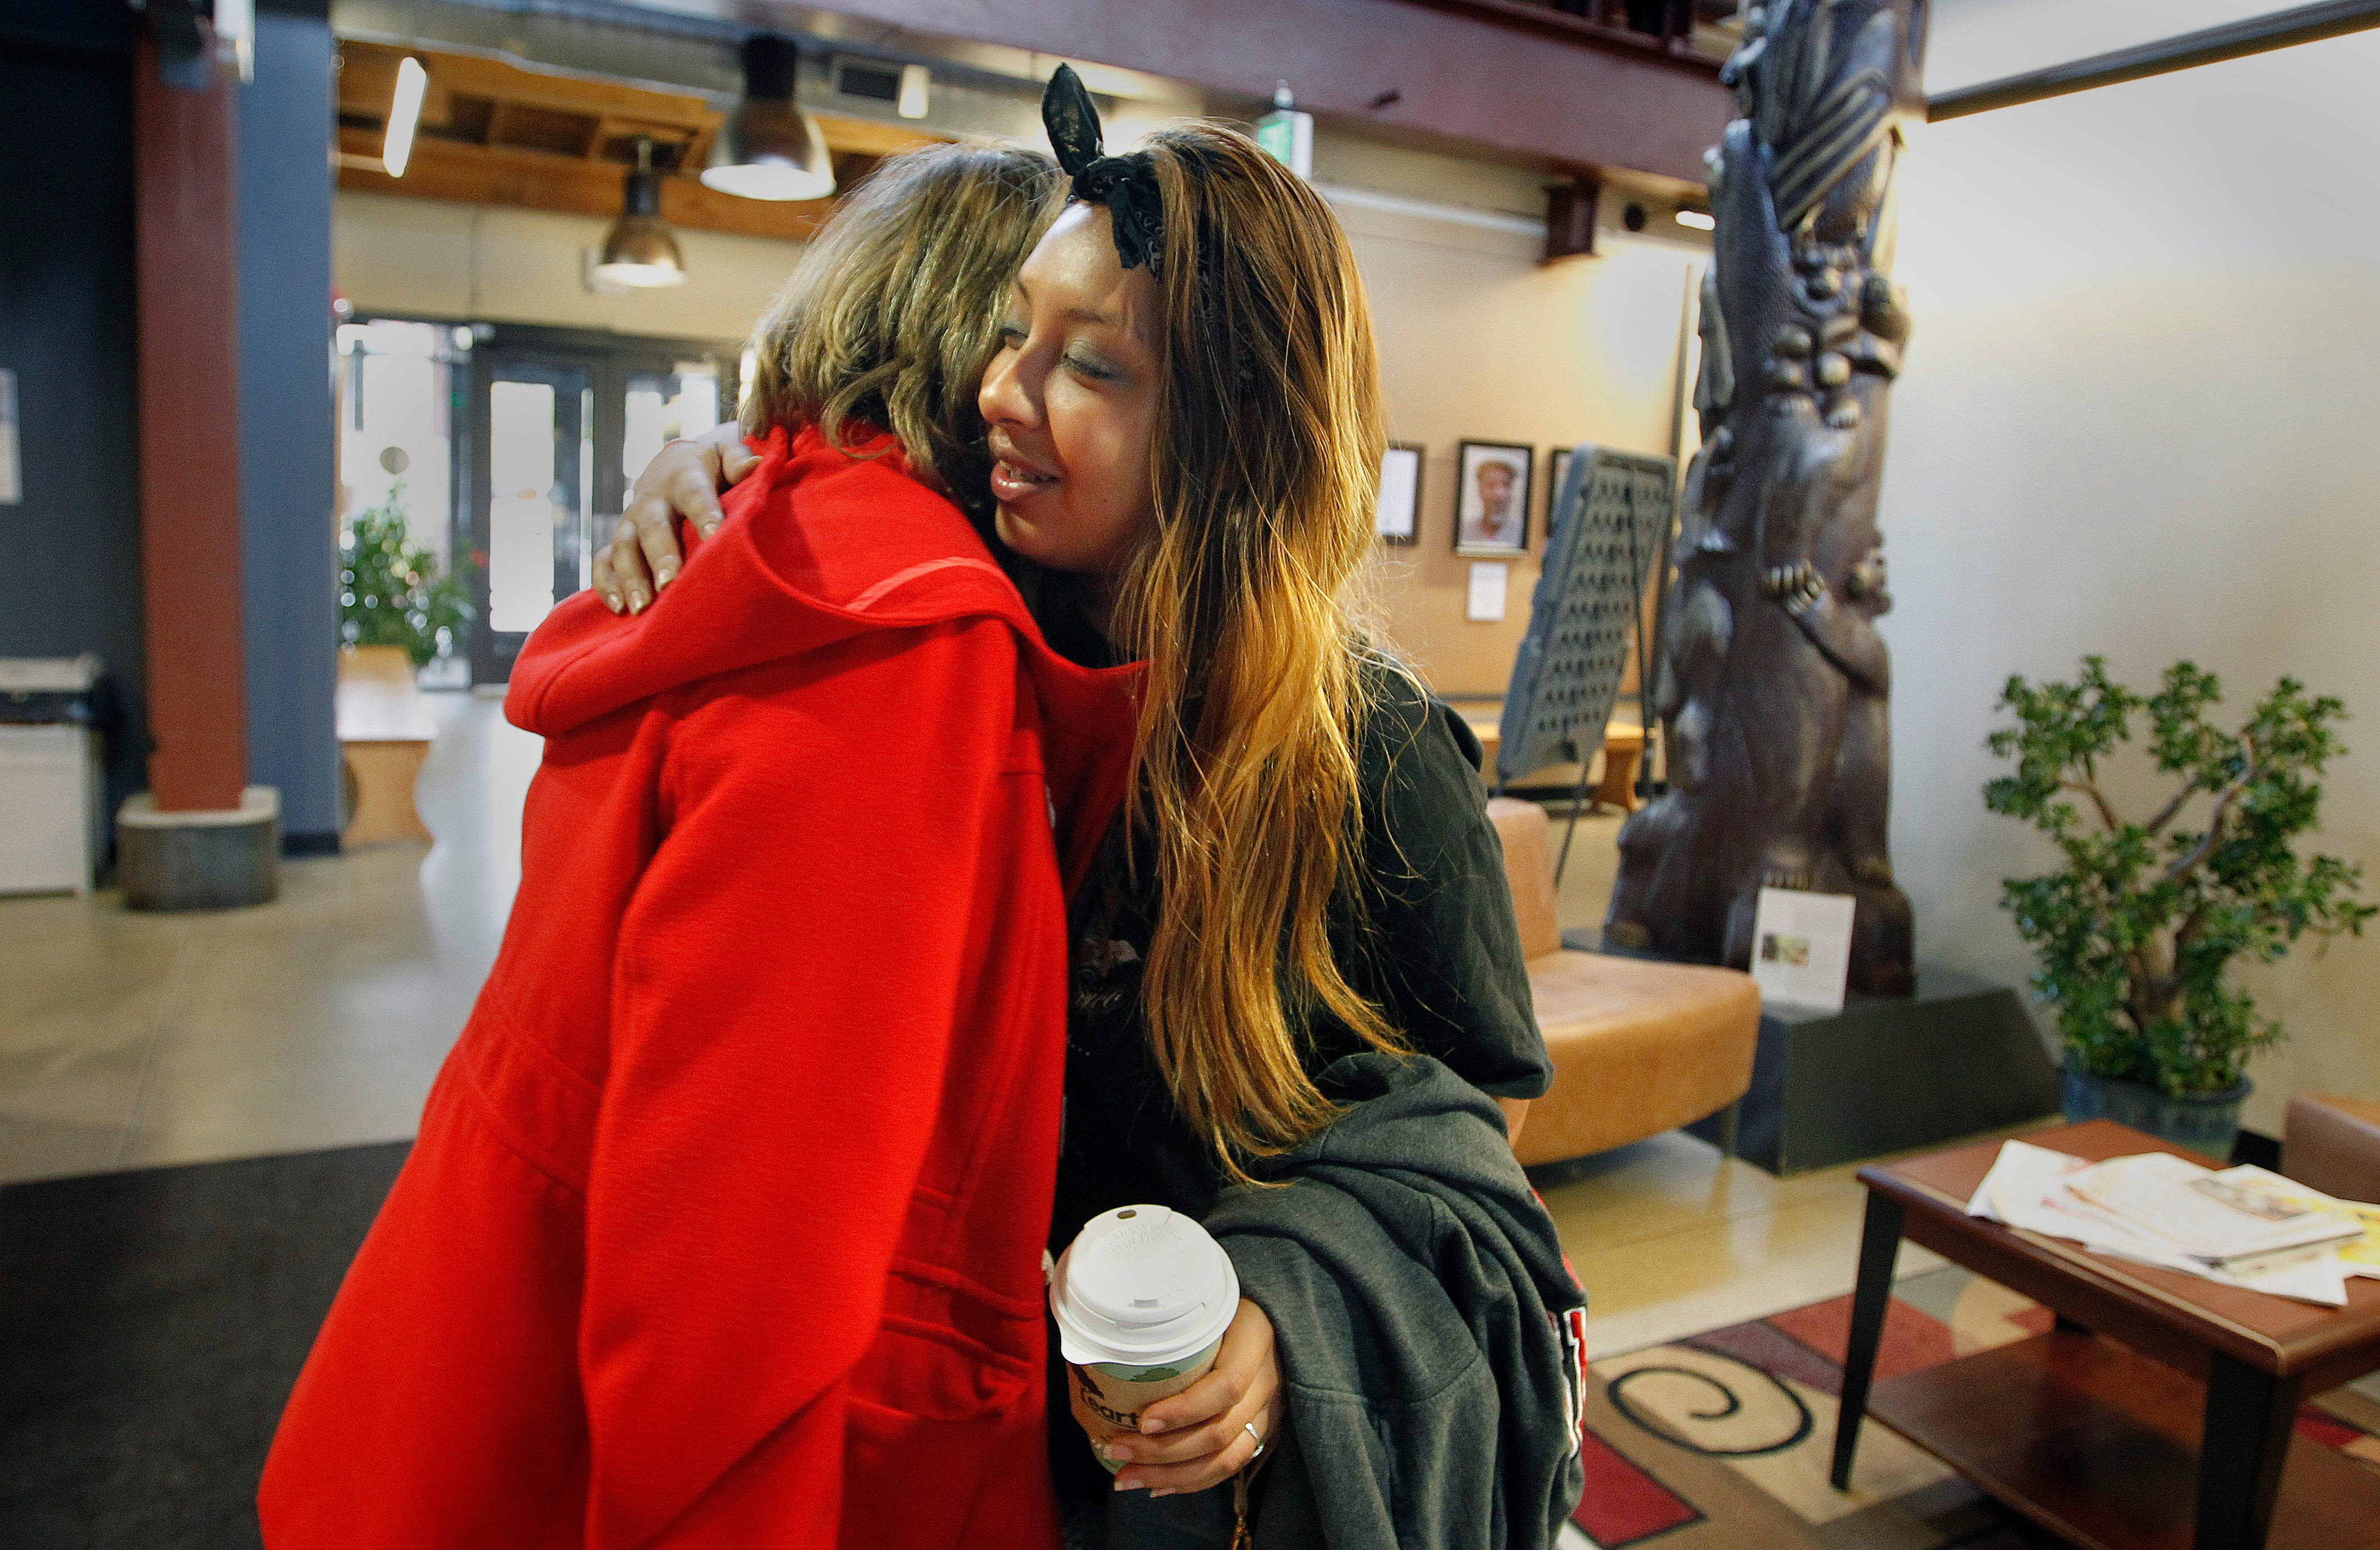 Madison pioneered the Assertive Community Treatment model in which teams provide support in the community for those dealing with mental illness. Team member Barbara Culver, left, hugs a Kiara, a client, after a visit on a recent morning.